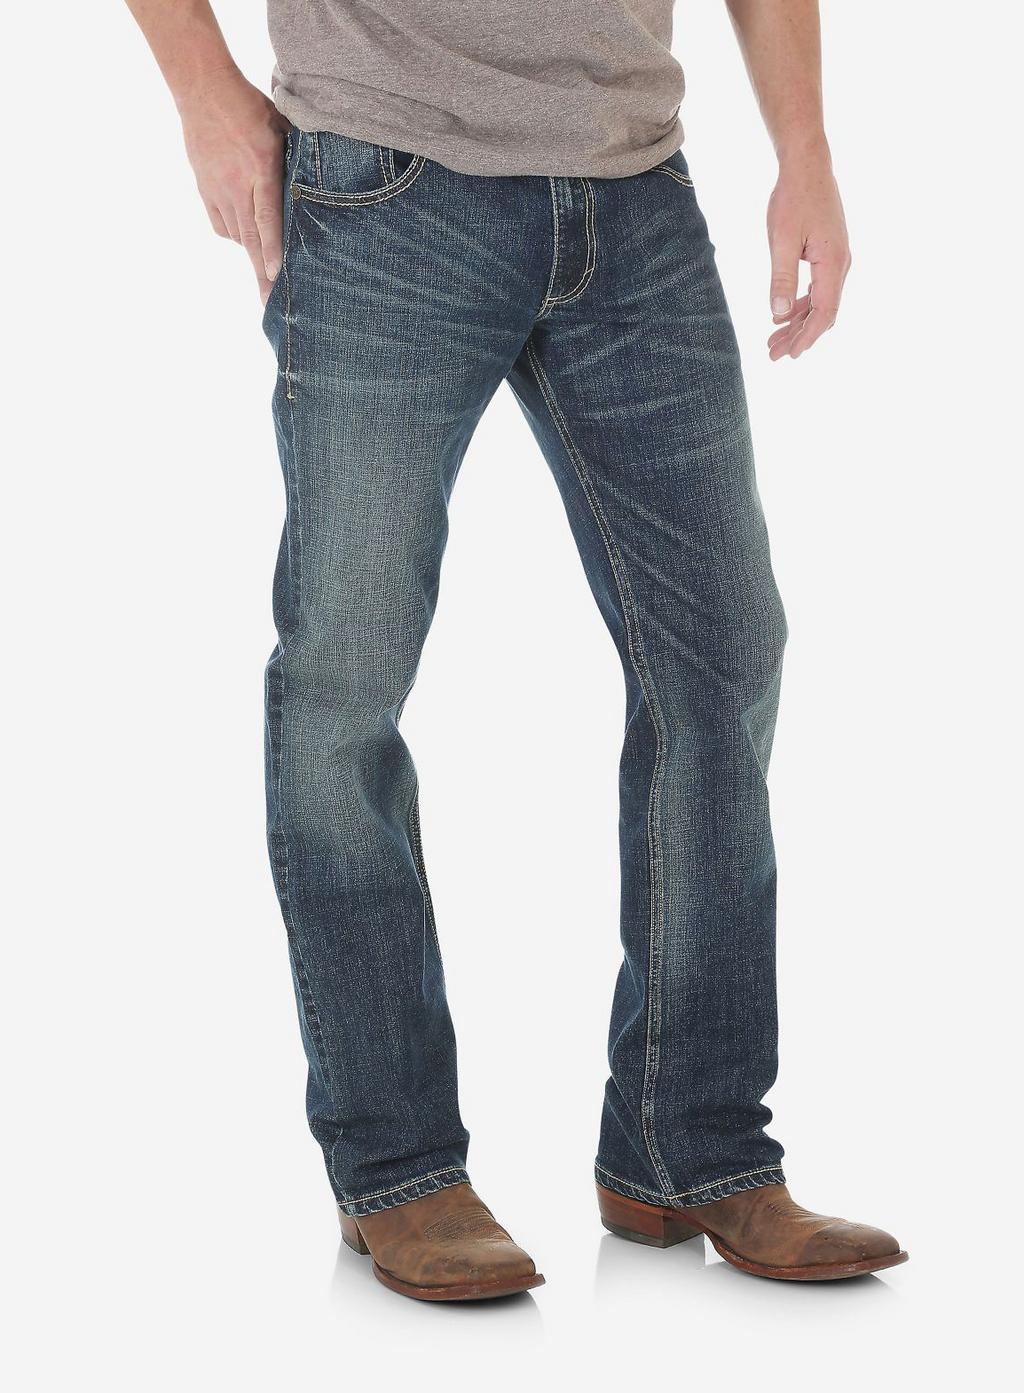 Retro Slim Fit Bootcut Jean (Layton)